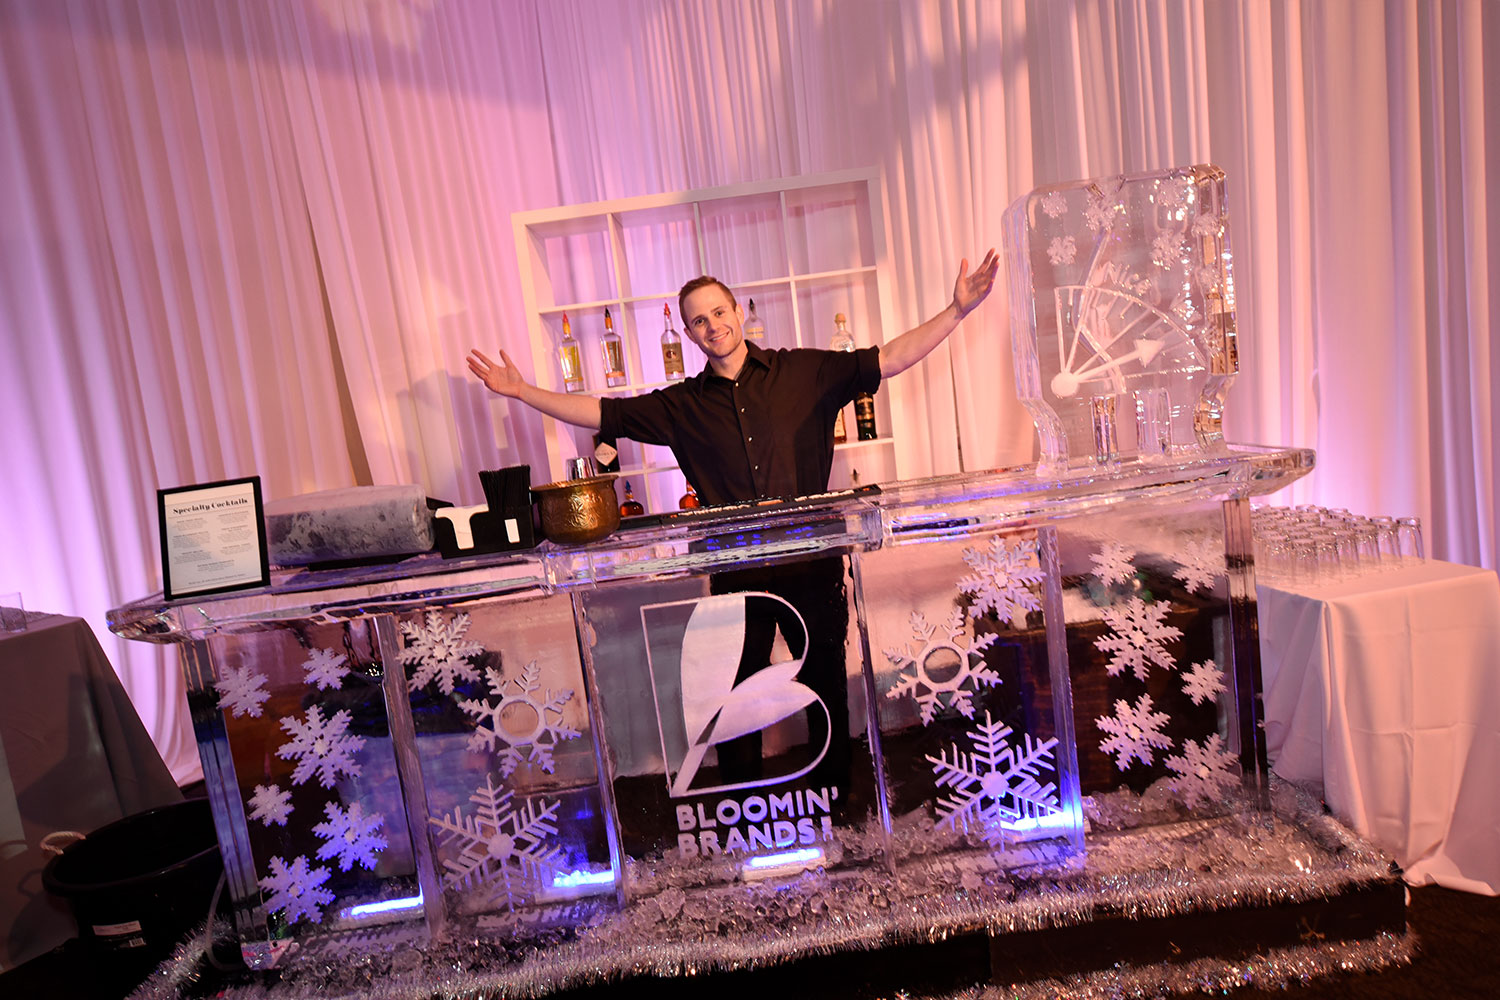 10twelve-toast-bloomin-brands-event-catering-artistic.jpg